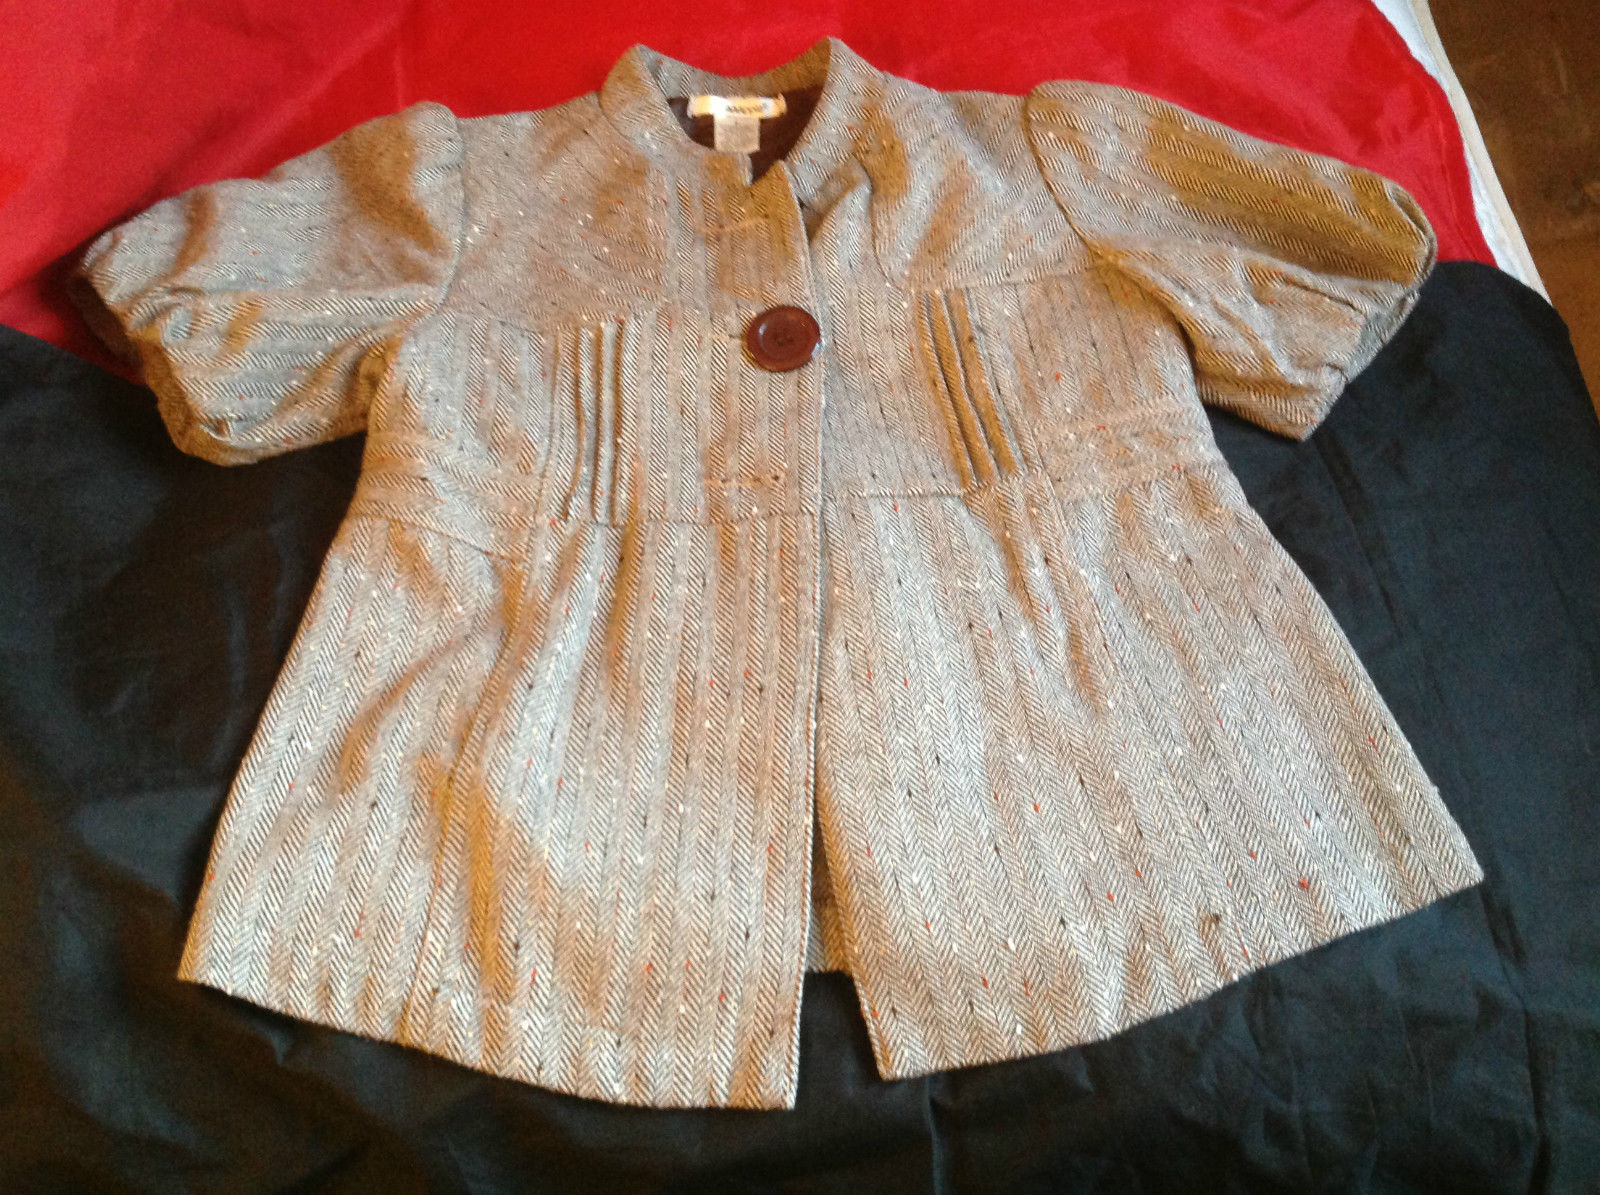 AAApple Womens Short Sleeve Coat Brown Color Size Small